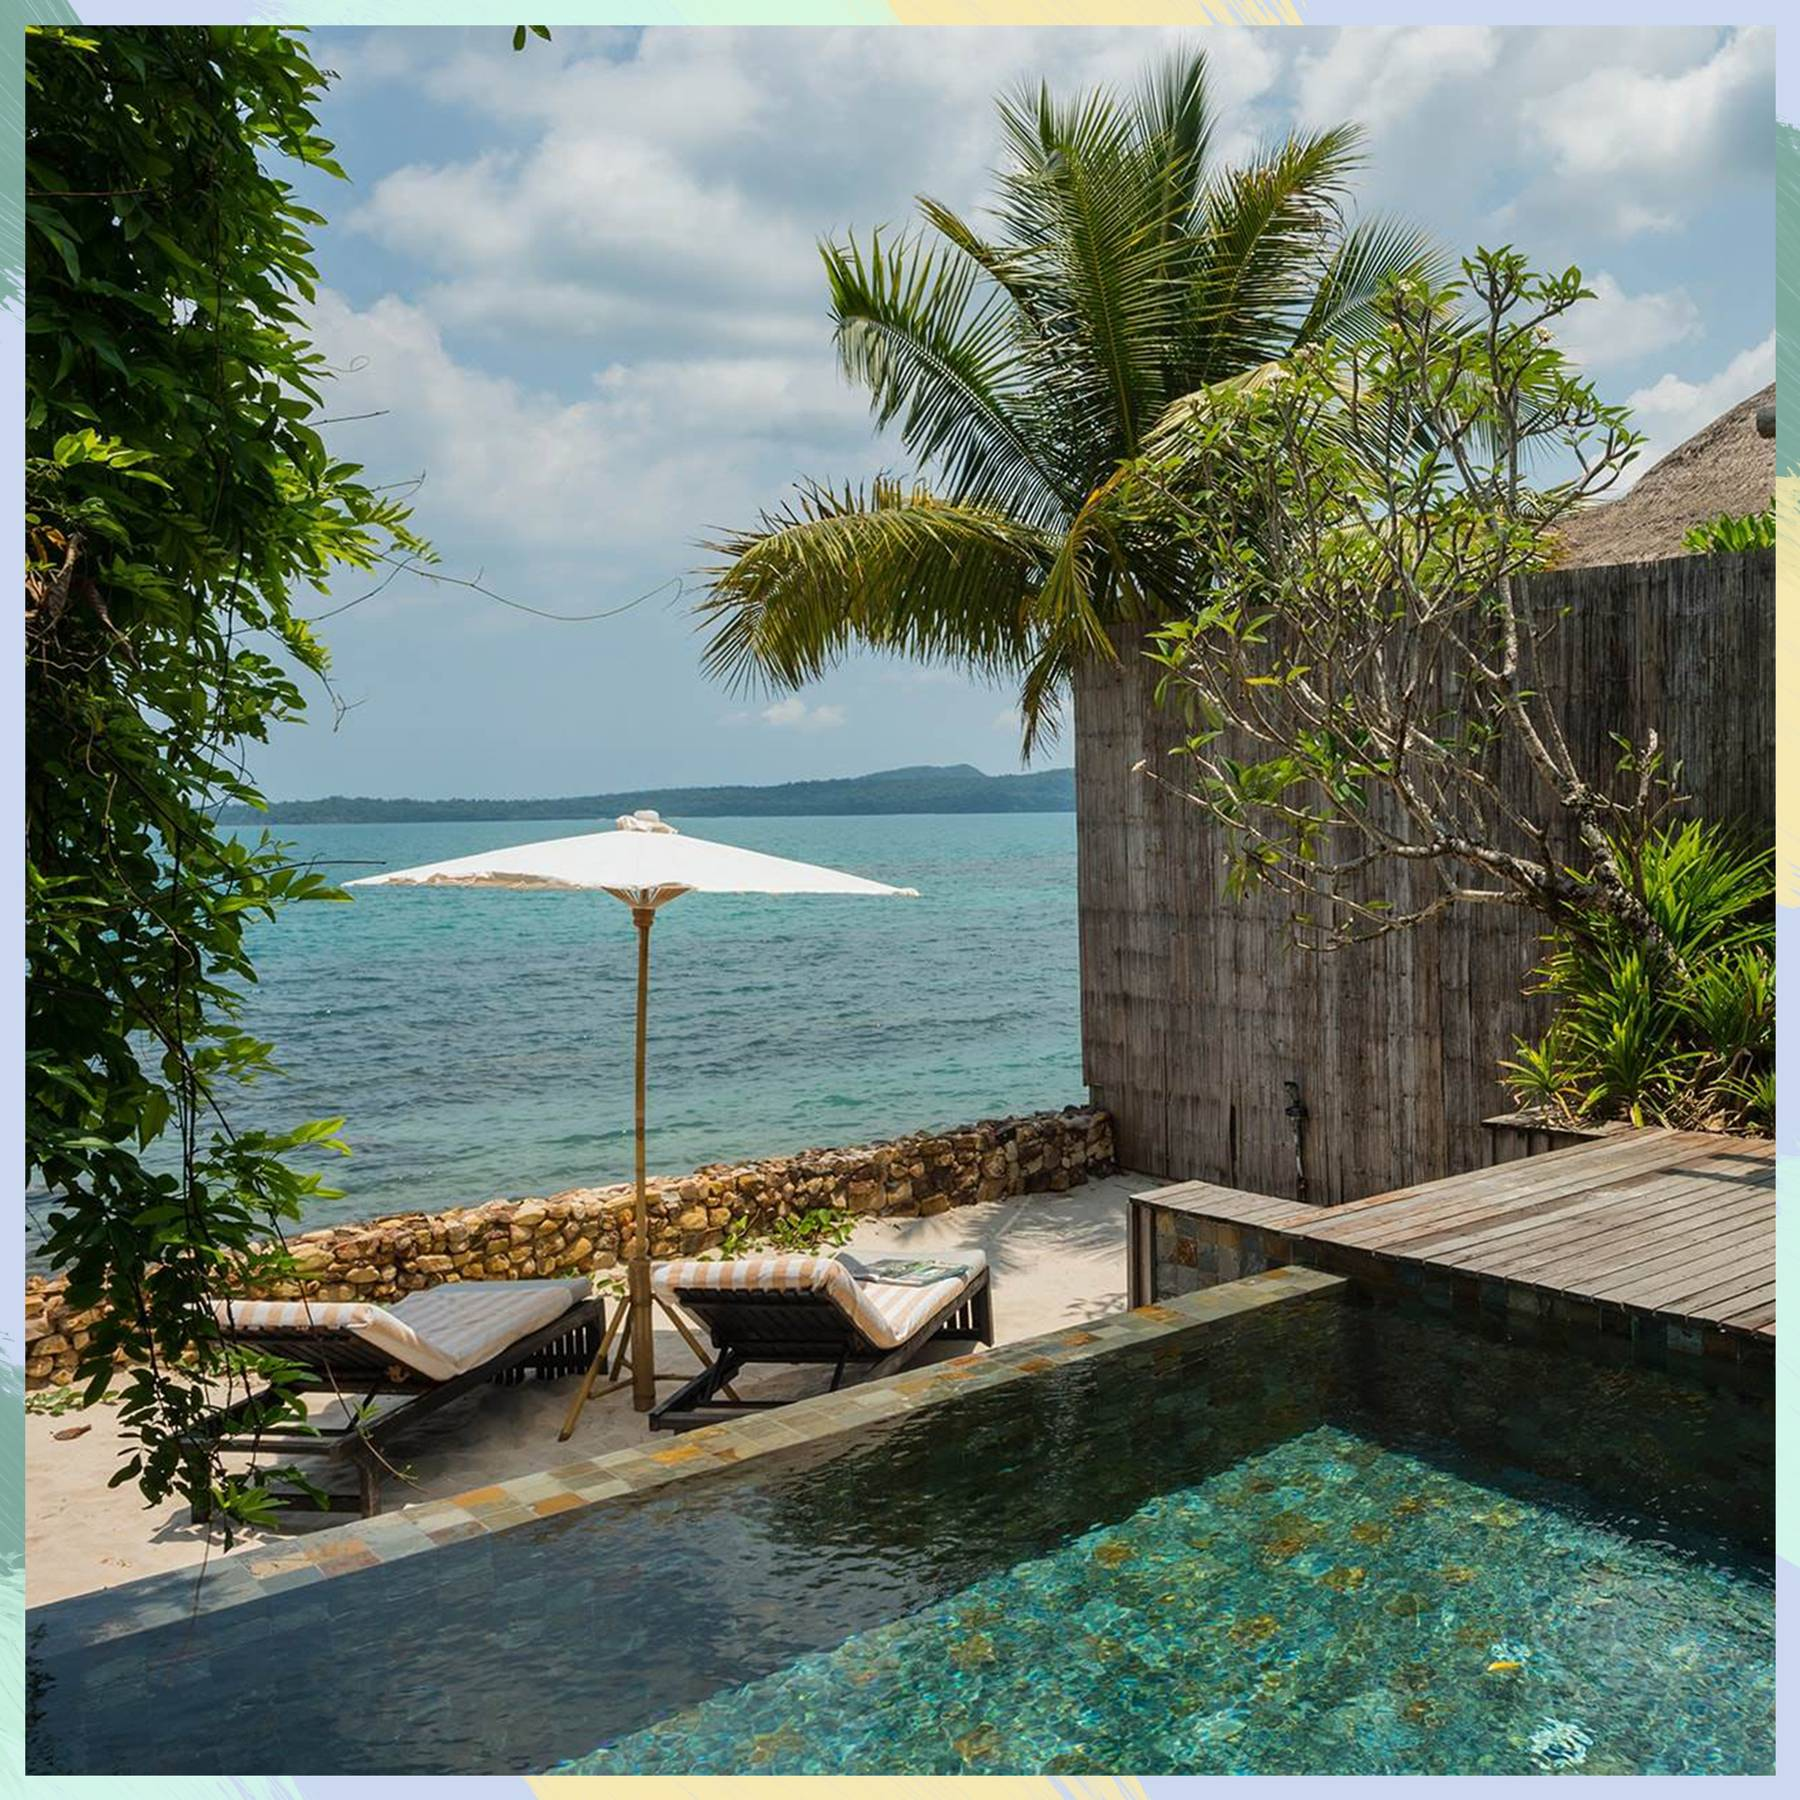 The 7 most sustainable hotels for eco-conscious travellers